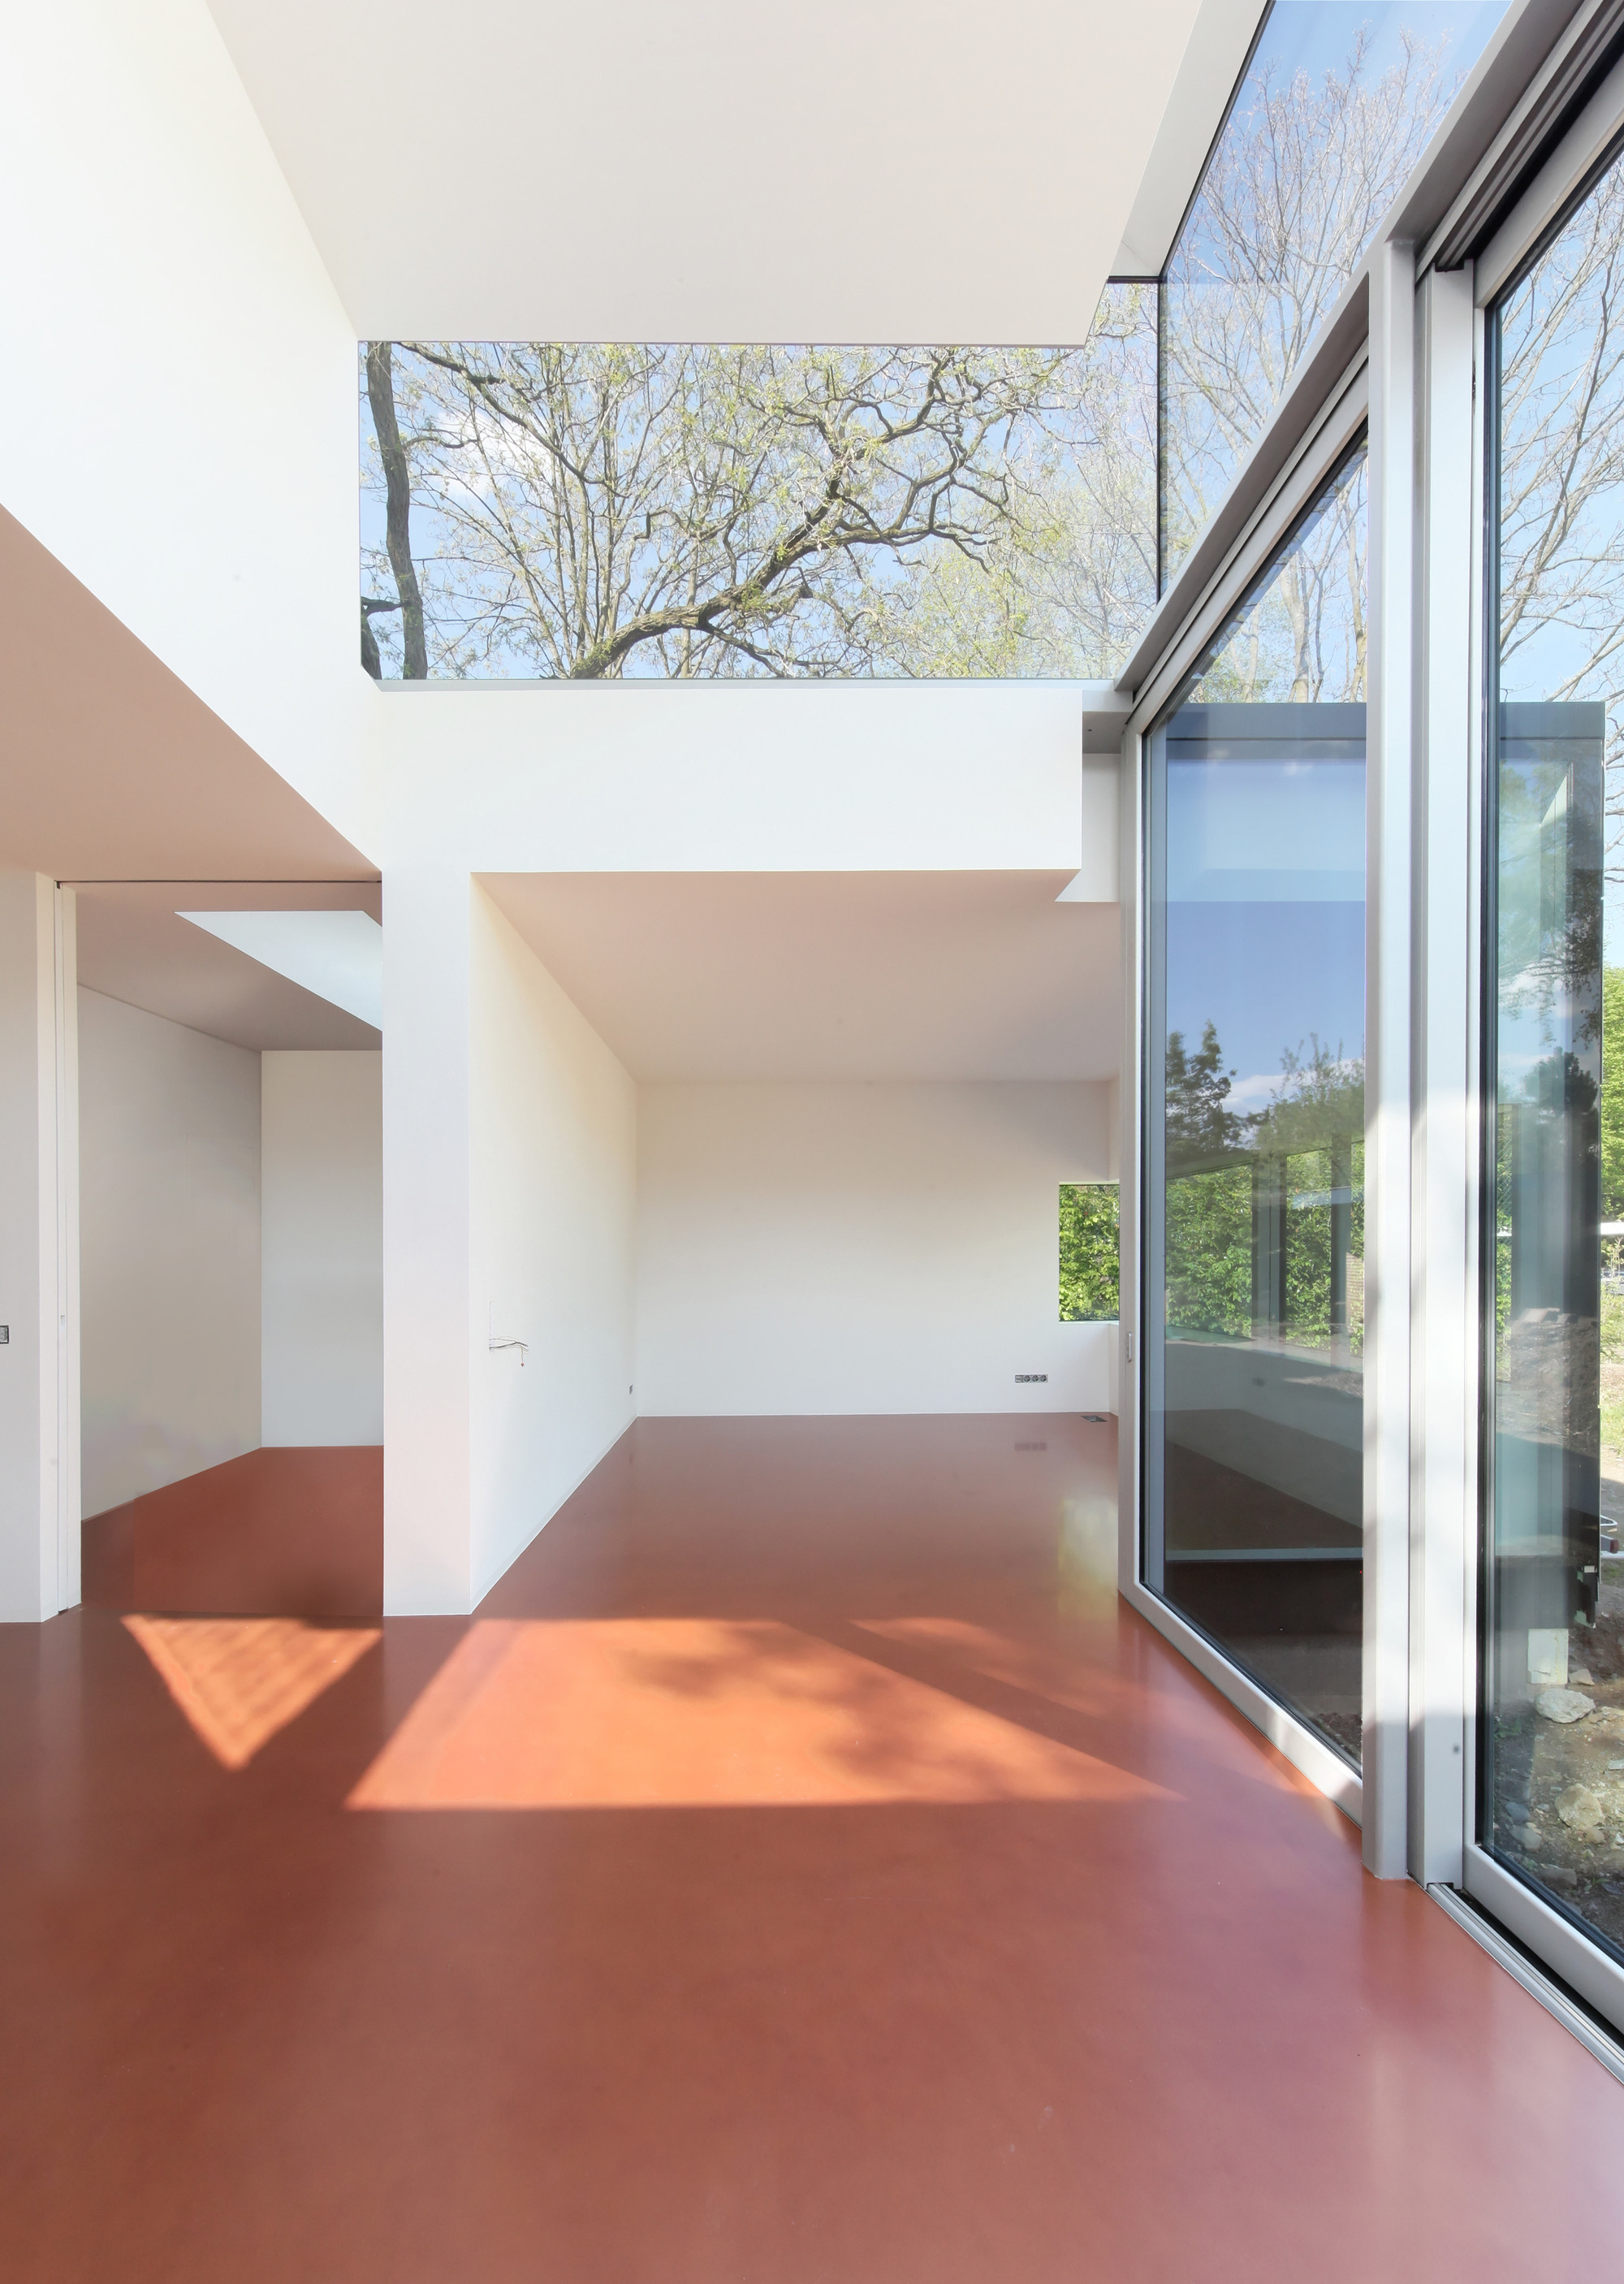 Gallery of Haus Neufert / Gatermann + Schossig - 2